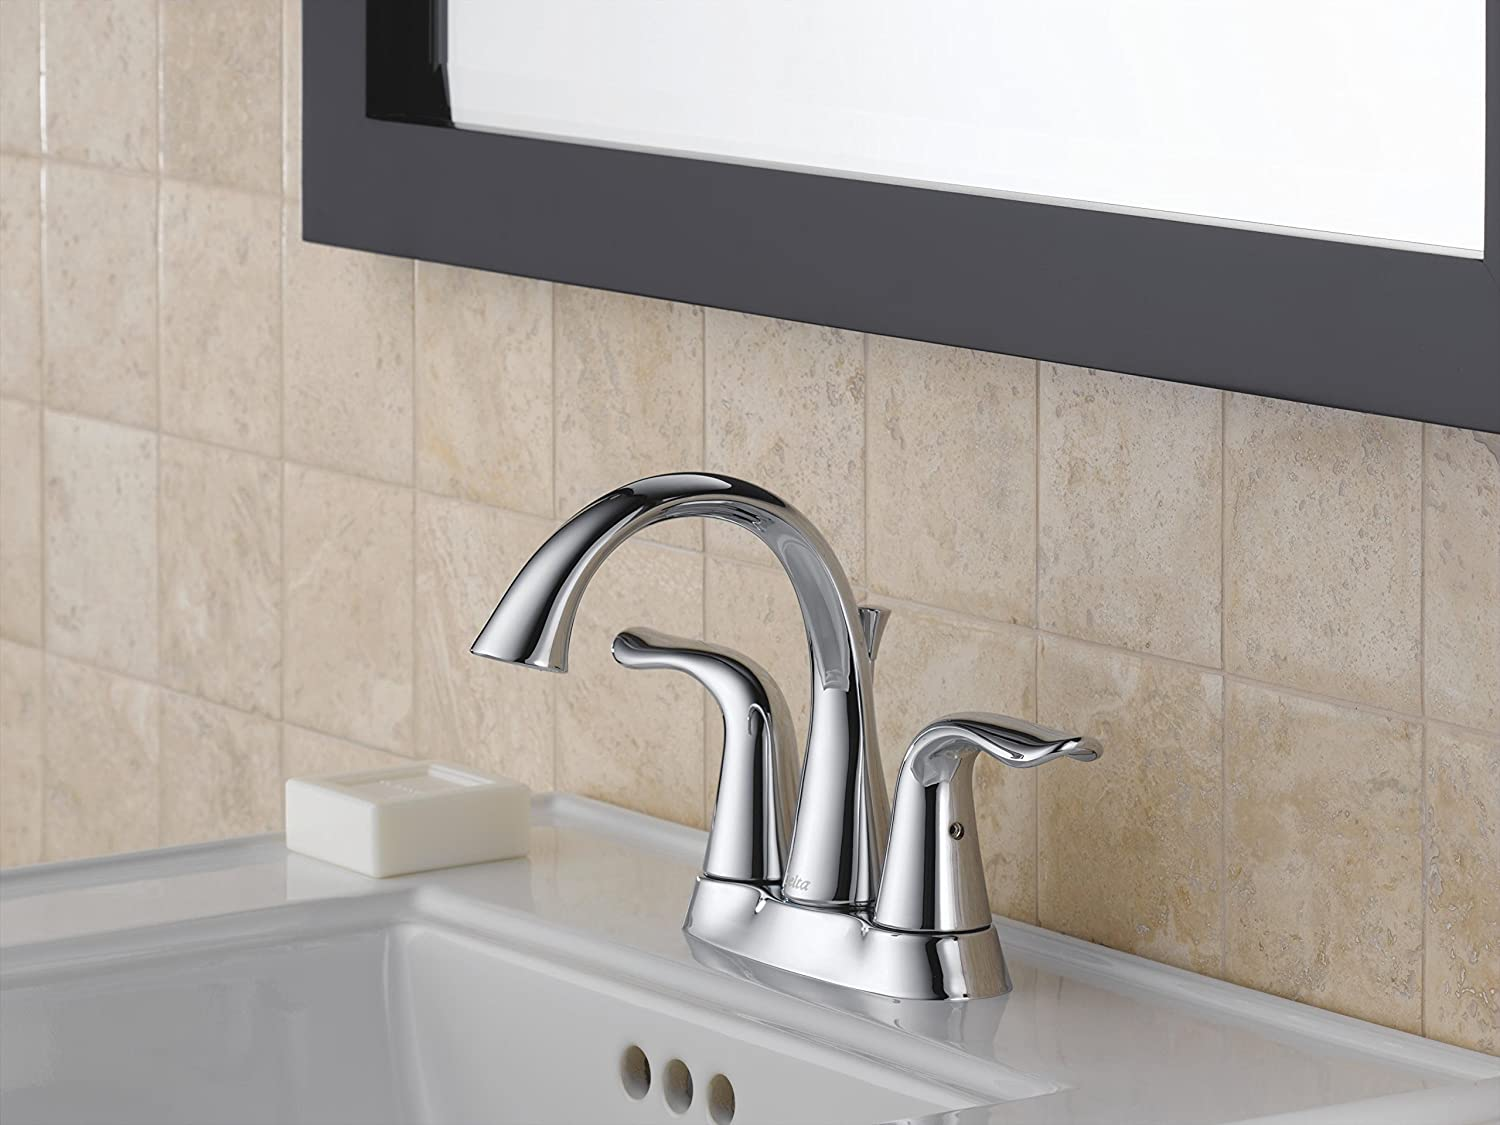 Delta 2538 MPU DST Lahara Two Handle Centerset Bathroom Faucet, Chrome    Touch On Bathroom Sink Faucets   Amazon.com